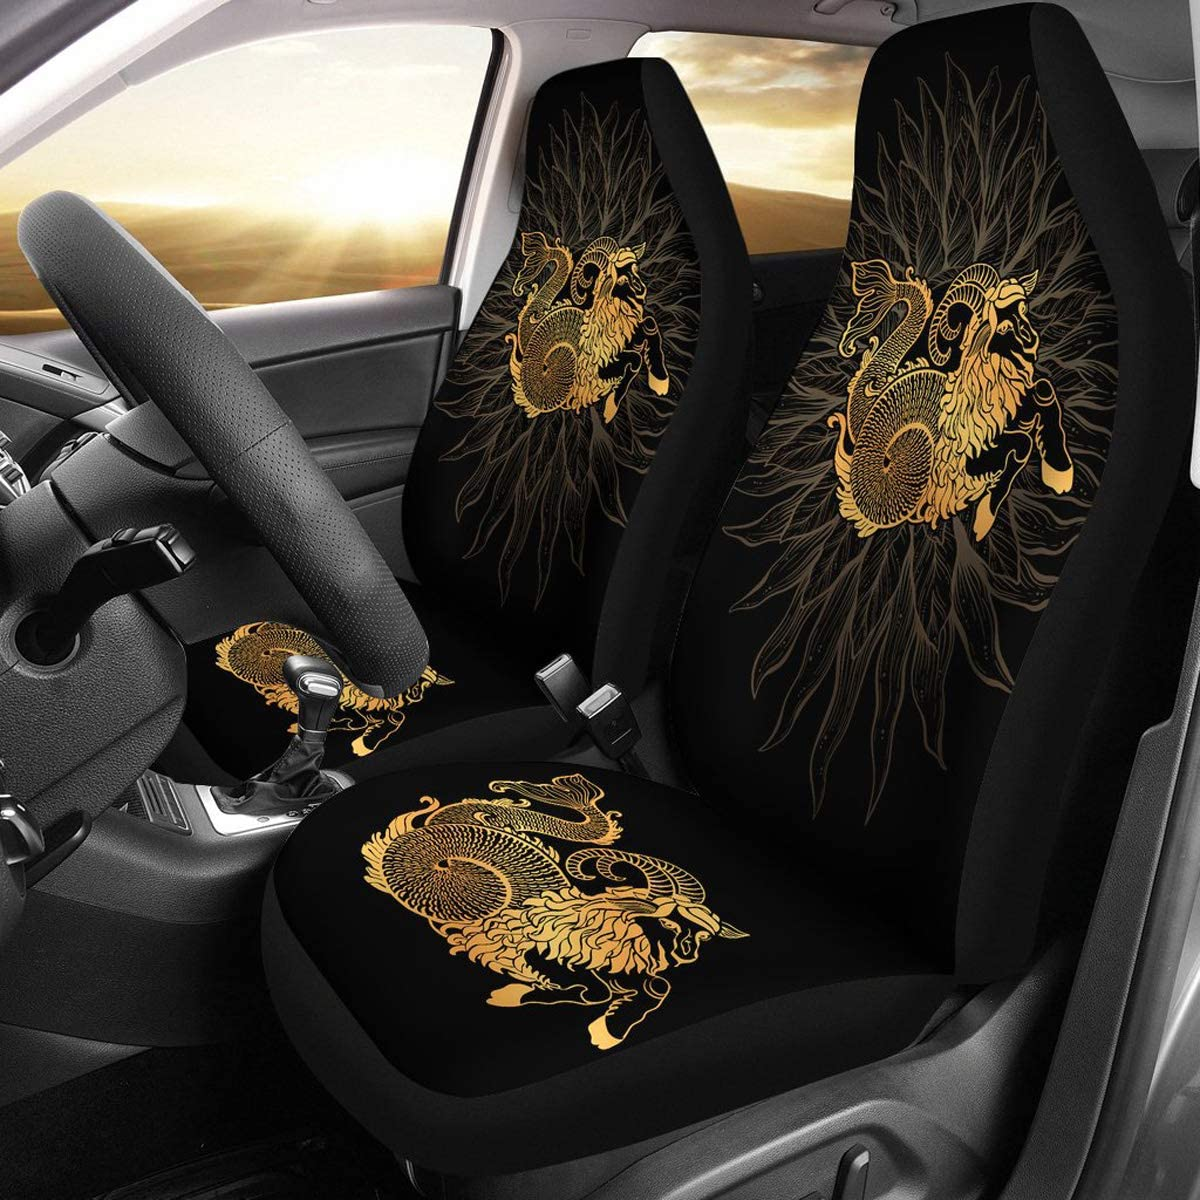 Custom Car Seat Protector Capricorn Lover Front Car Cover Gift freedomlook Capricorn Zodiac Car Front Seat Covers Set of 2